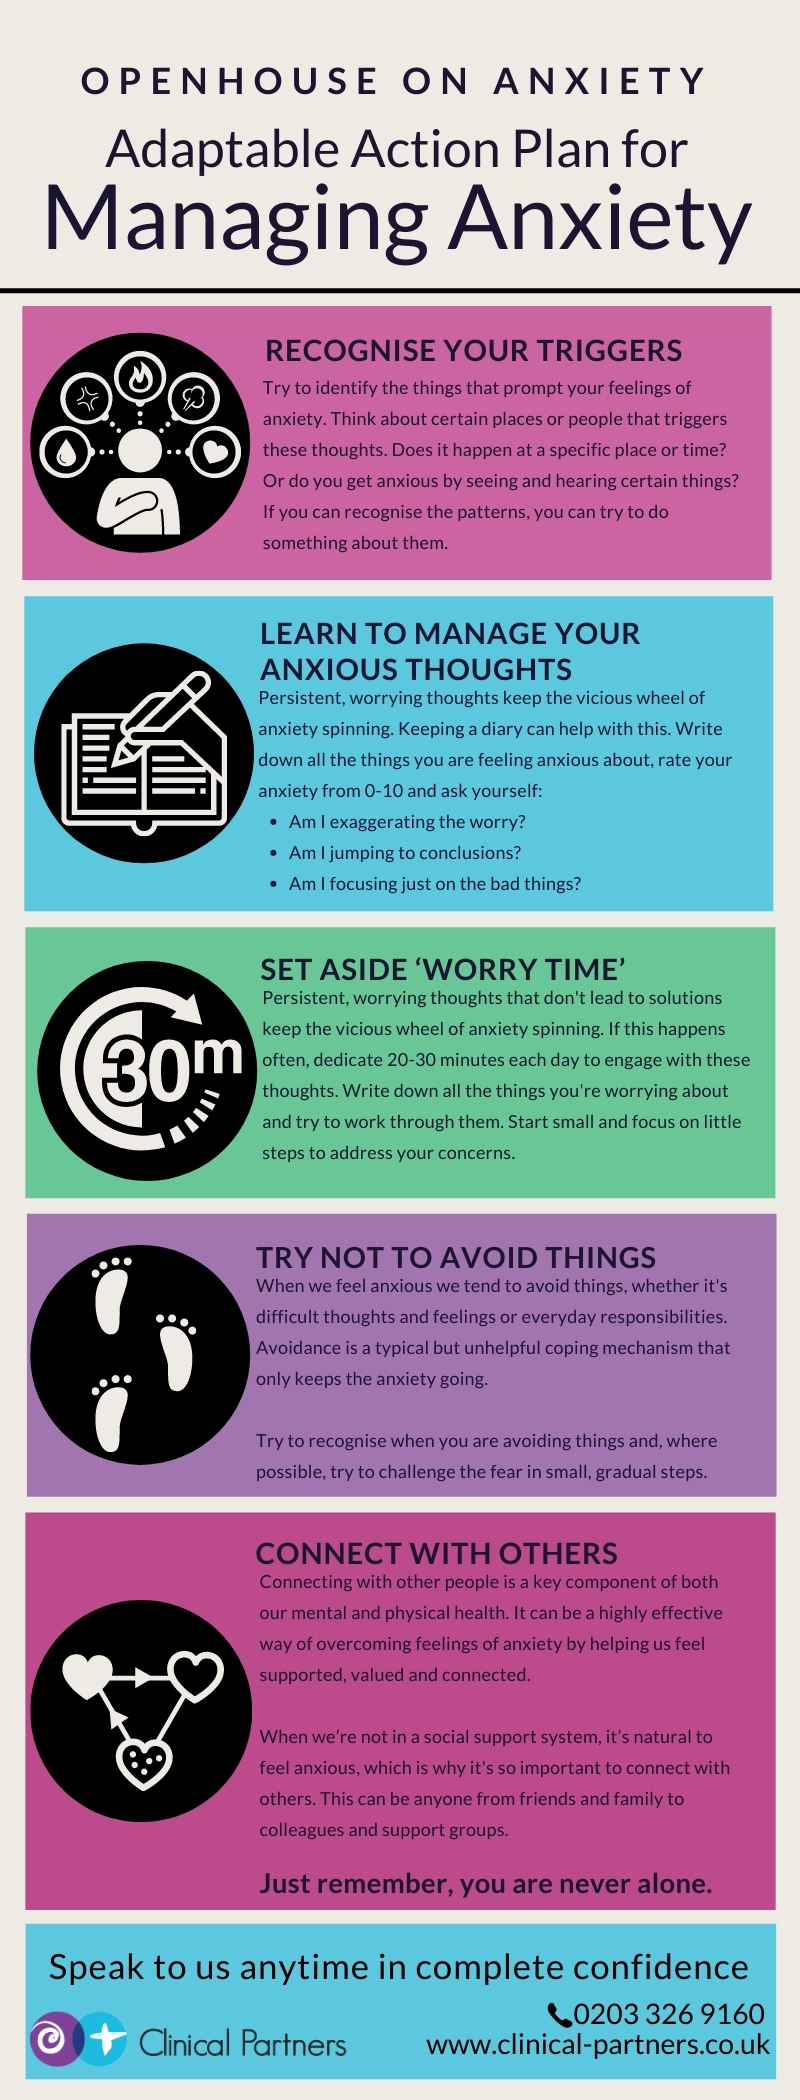 Top Tips to manage your anxiety